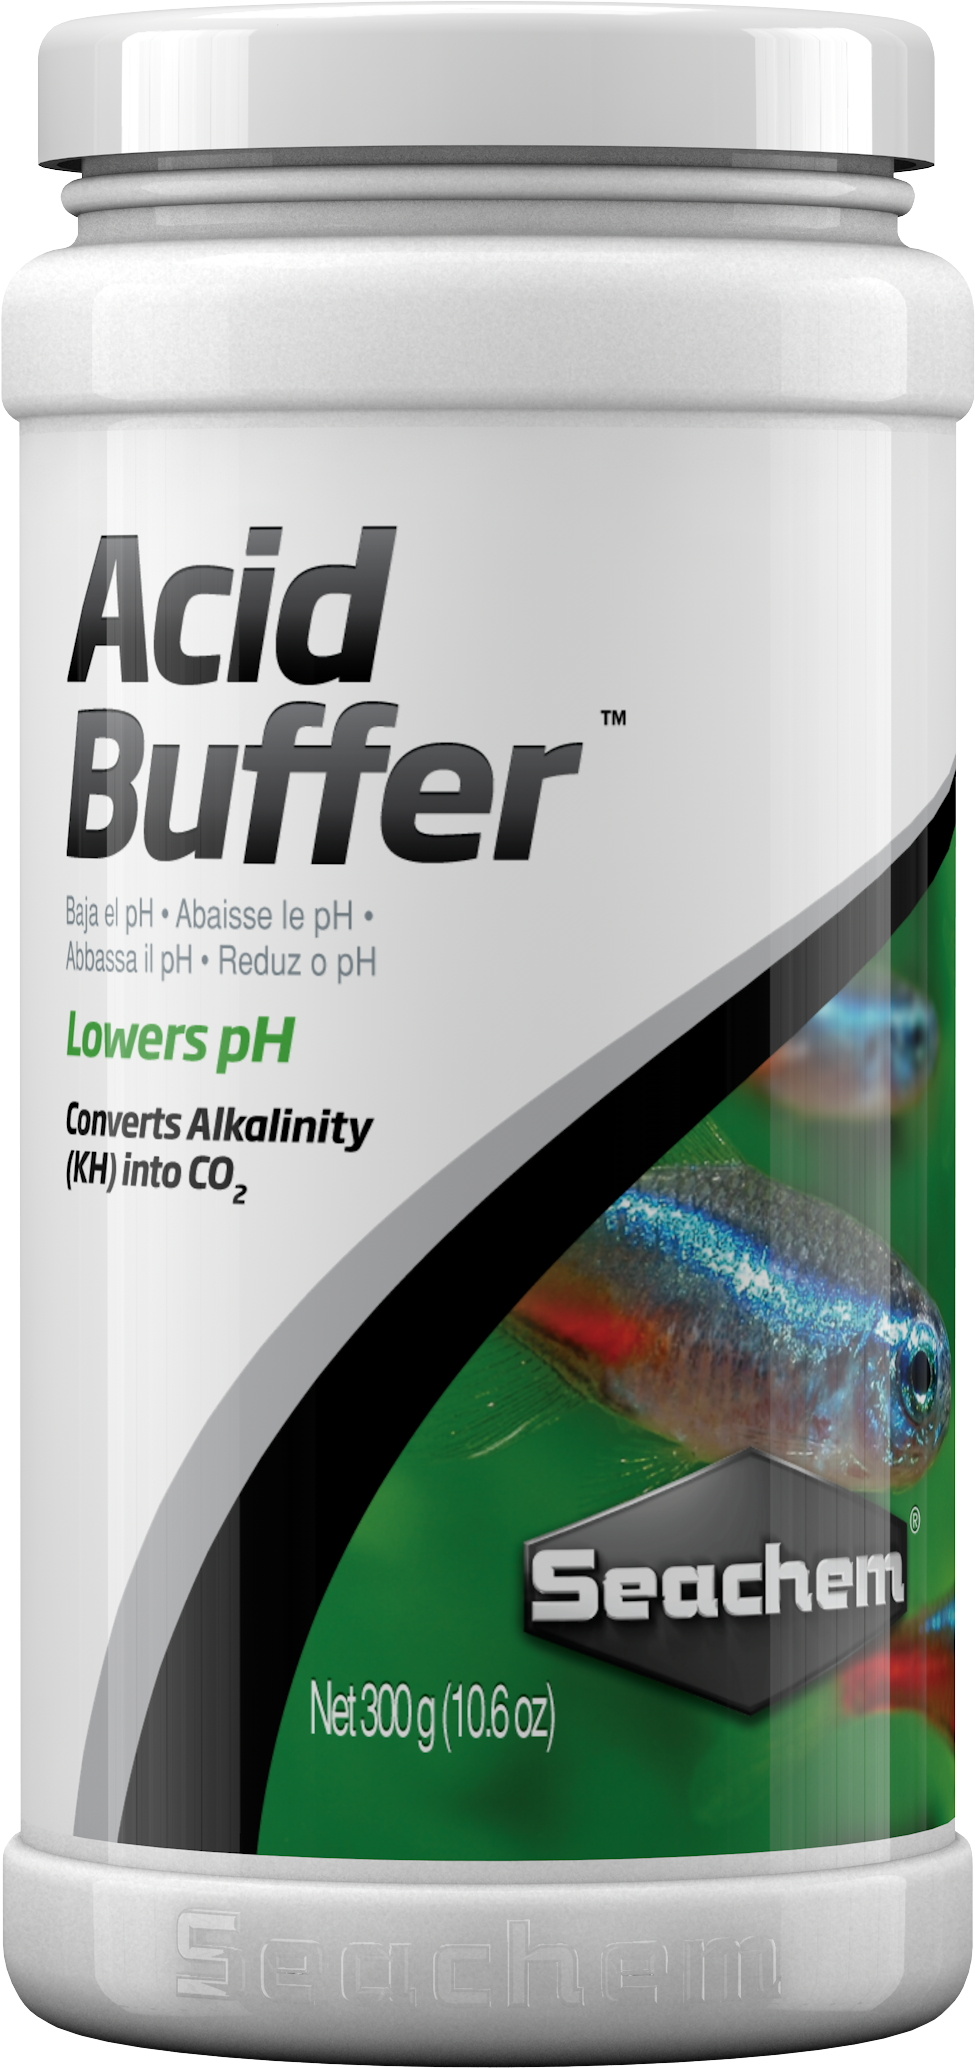 SEACHEM Acid Buffer 300 gr. solution tampon pour abaisser ou stabiliser le pH entre 4.0 et 6.8